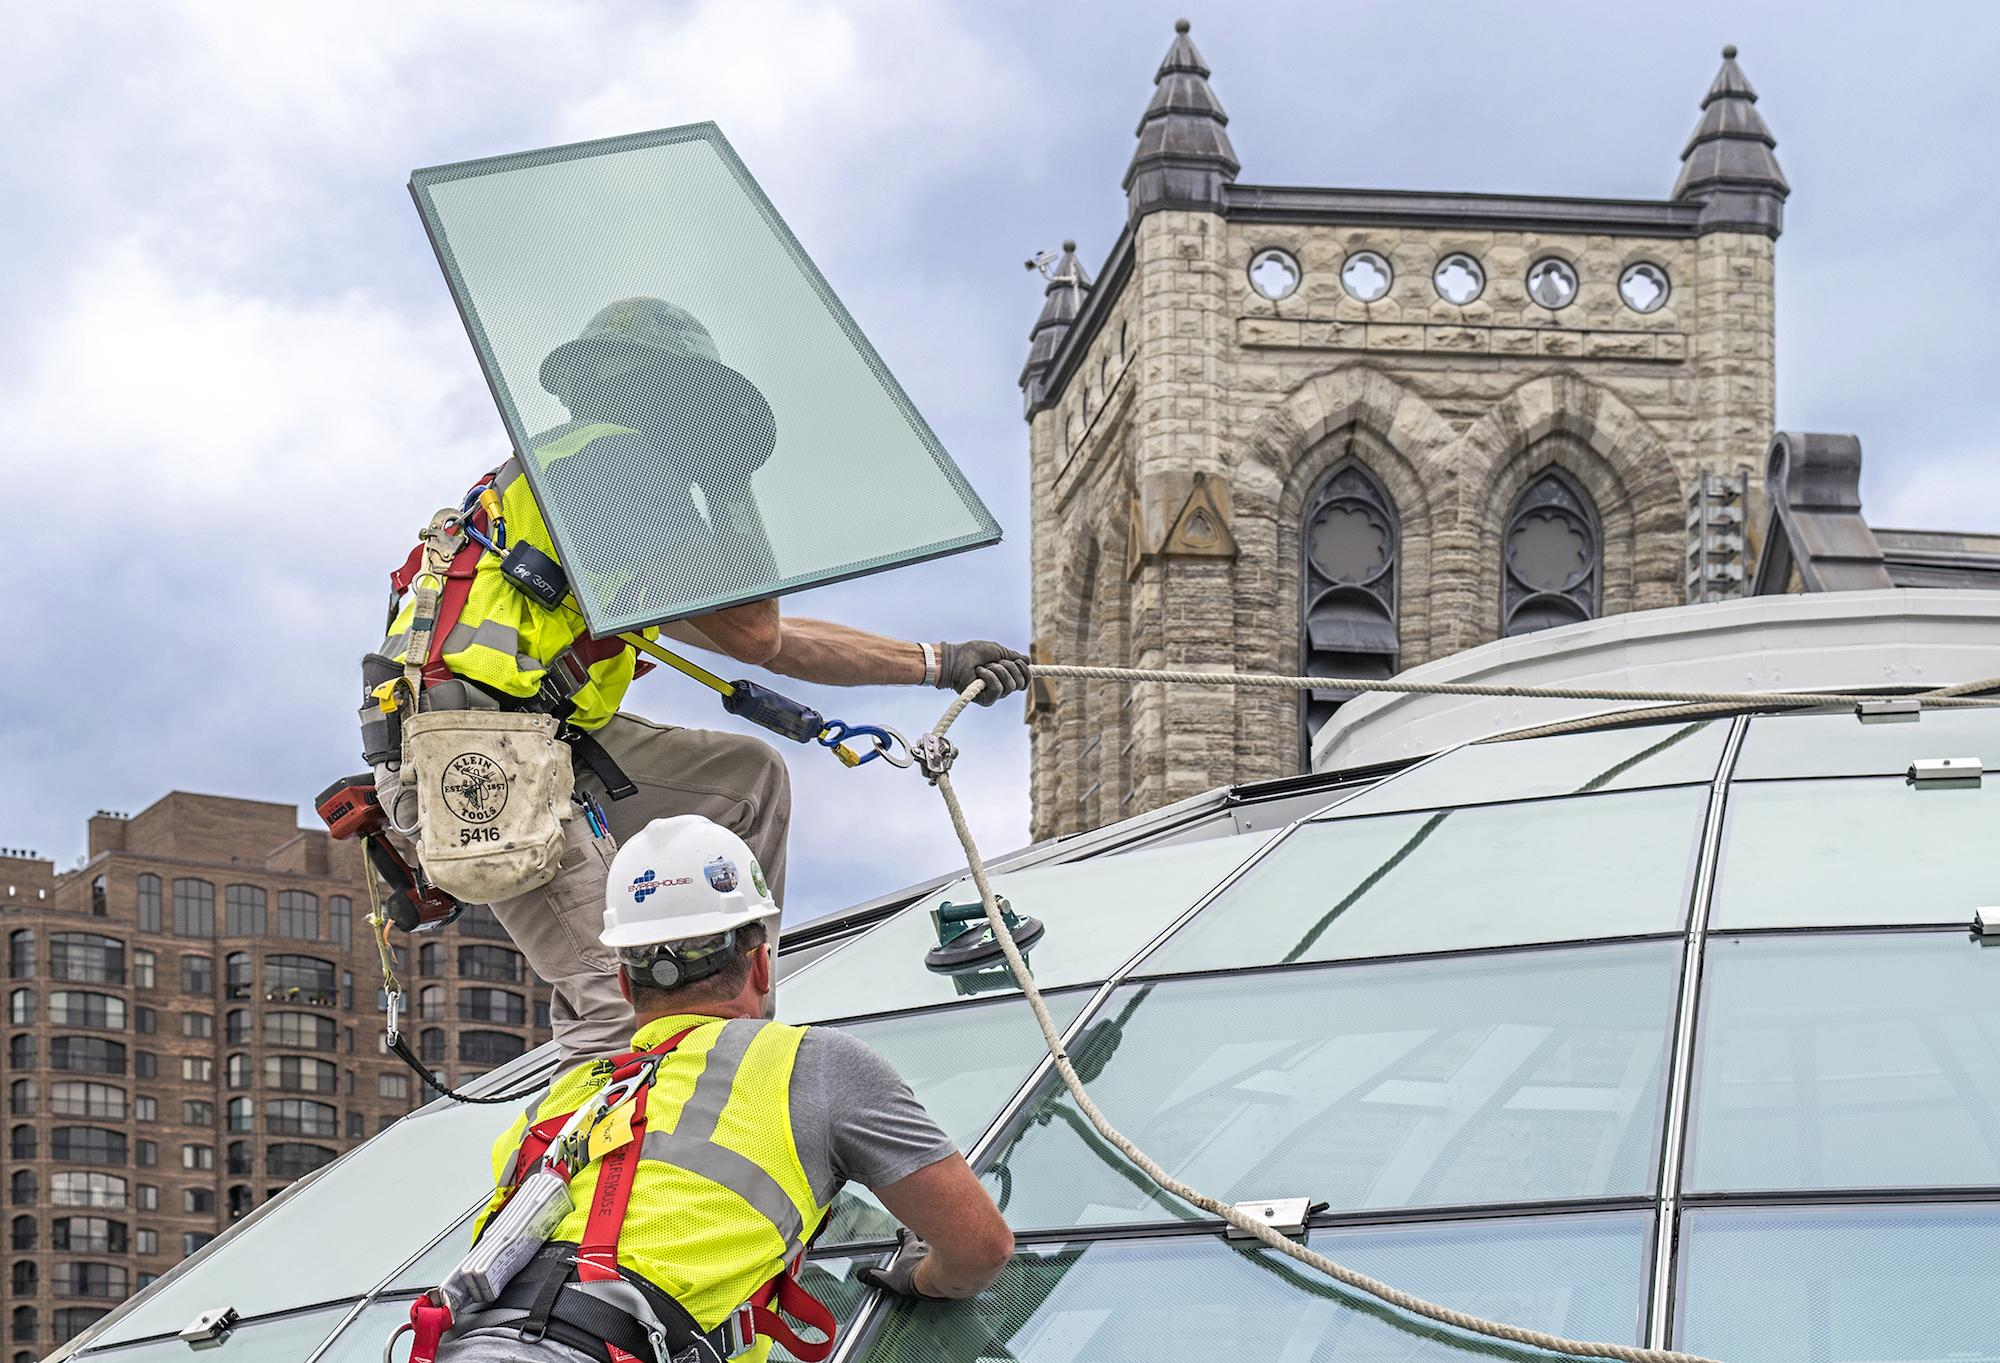 Glaziers make challenging installation with proper equipment and procedures